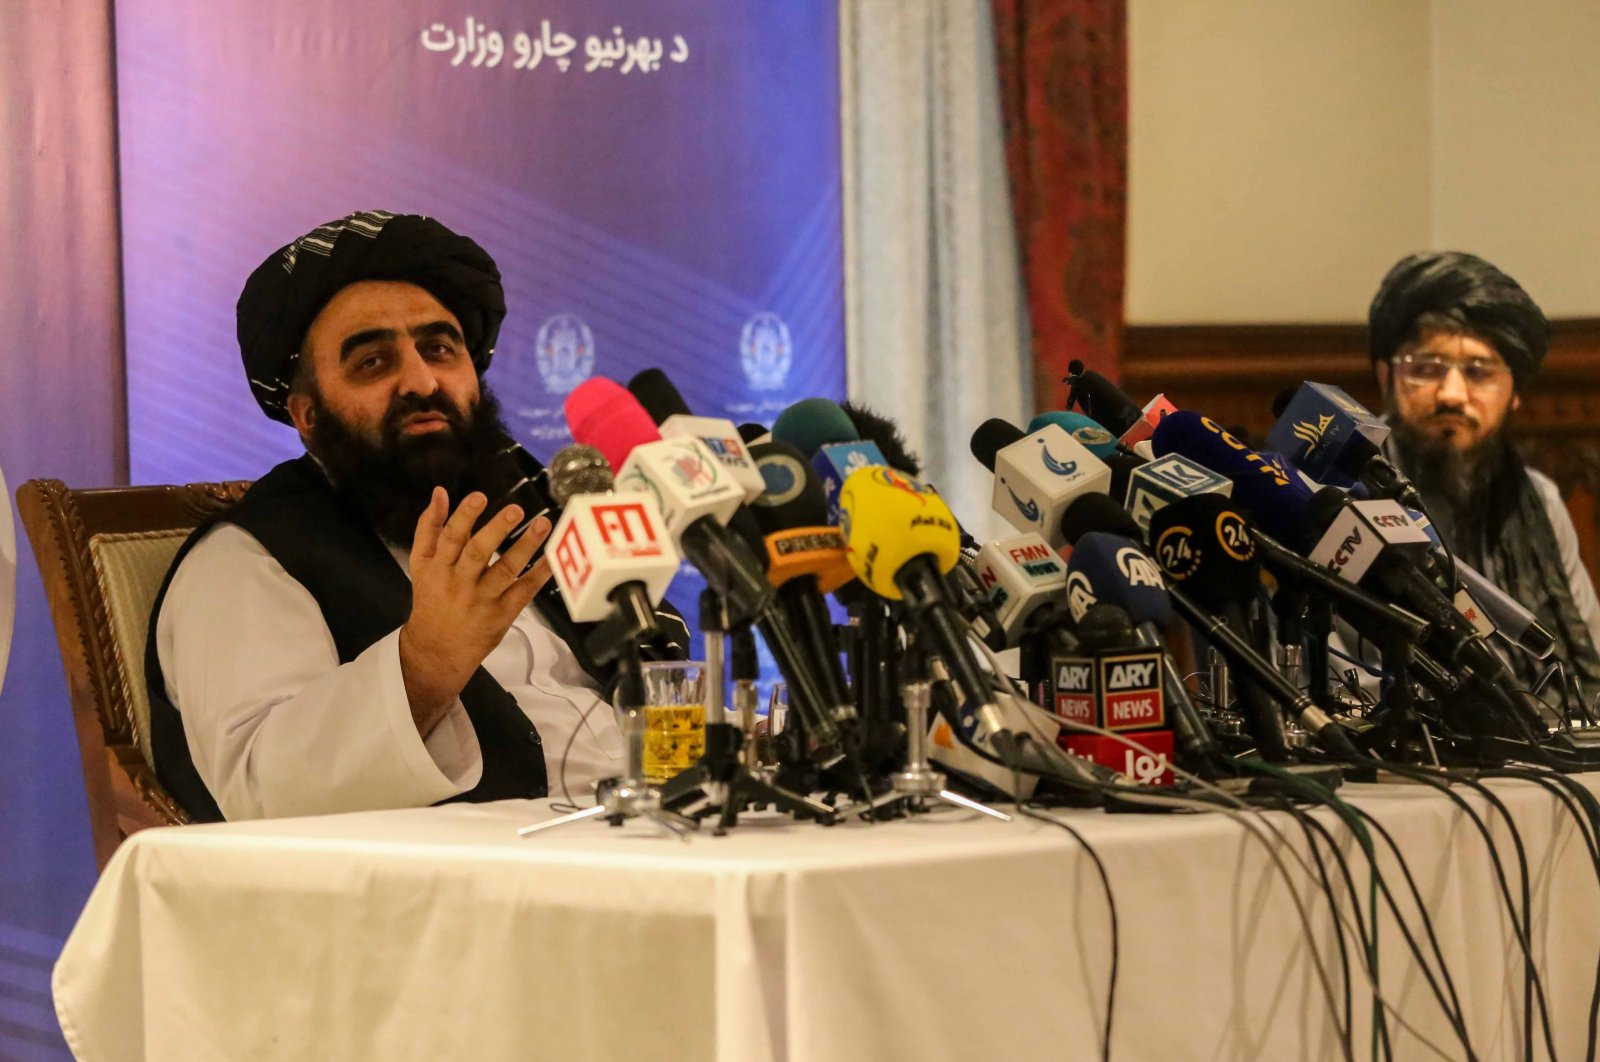 Amir Khan Muttaqi, the Taliban's acting Foreign Minister, talks with journalists during a press conference in Kabul, Afghanistan, Sept. 14, 2021. (EPA Photo)